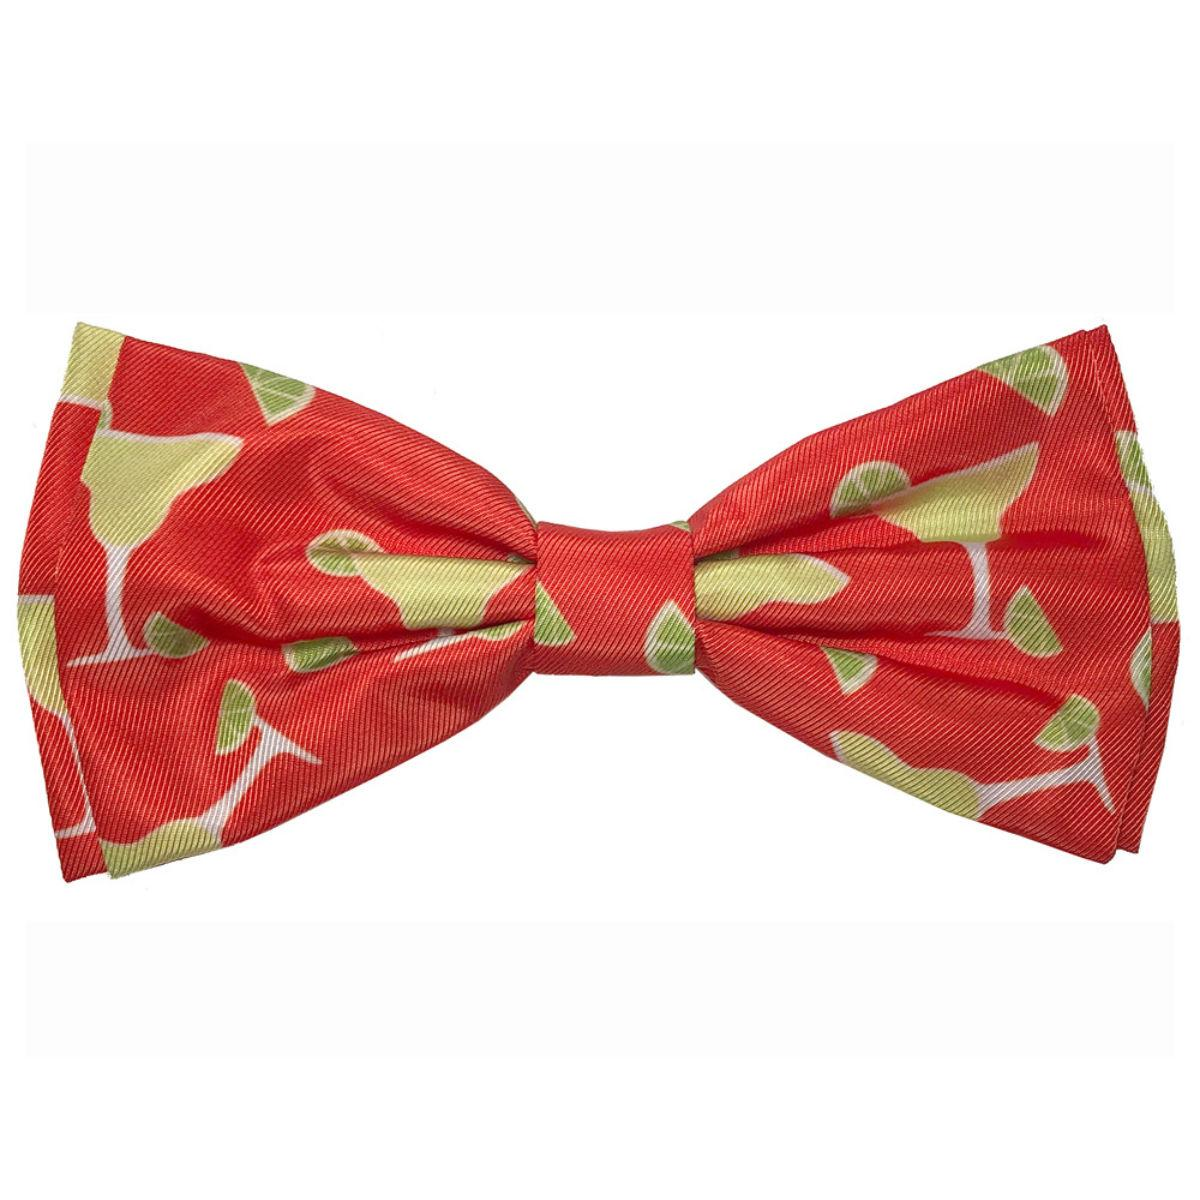 Huxley & Kent Dog and Cat Bow Tie Collar Attachment - Margarita